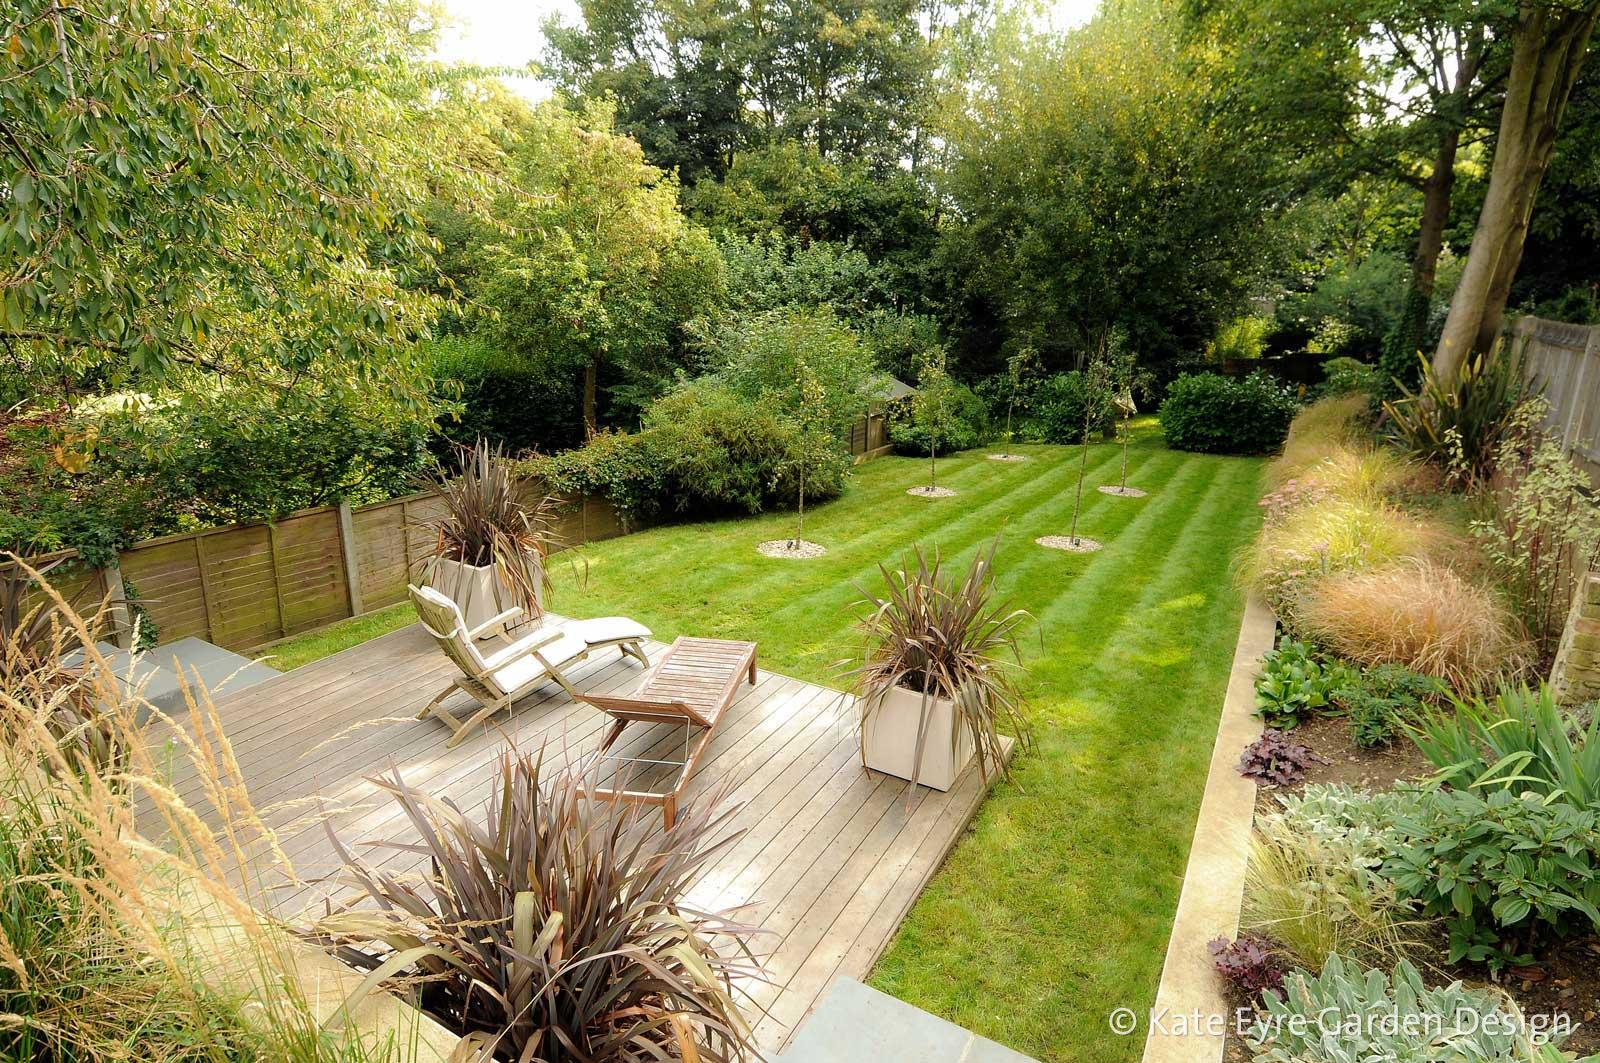 Garden design in crystal palace south east london for How to design garden layout